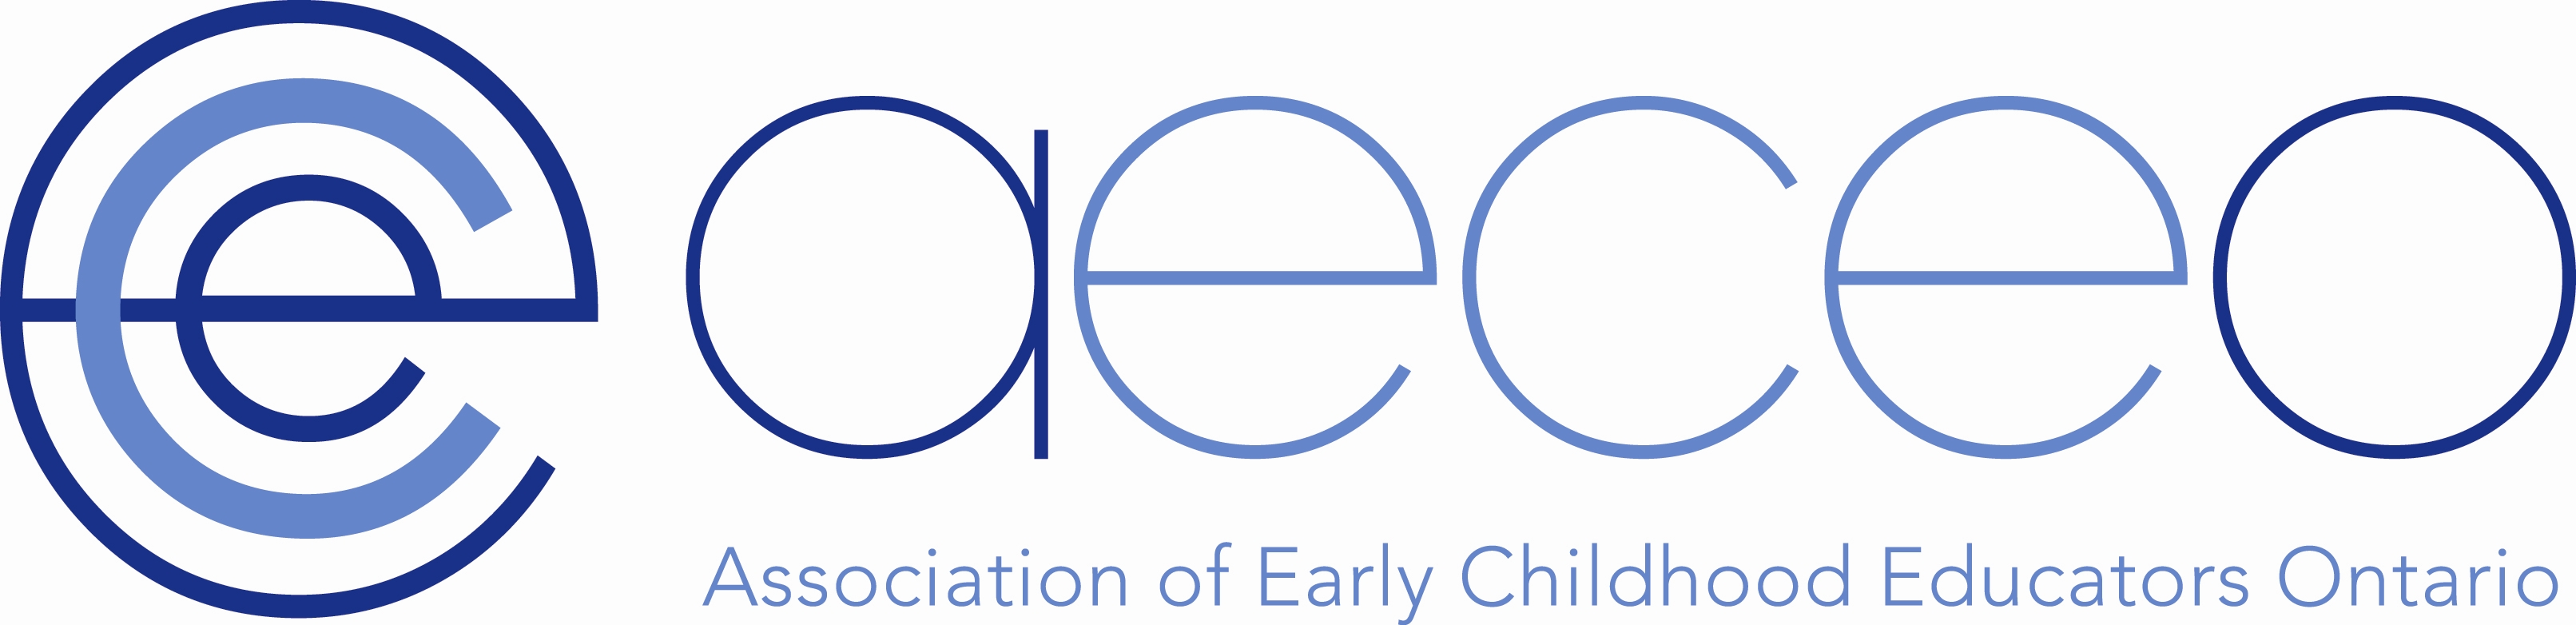 AECEO_Logo_-_Final_large_file_version_A_copy.JPG